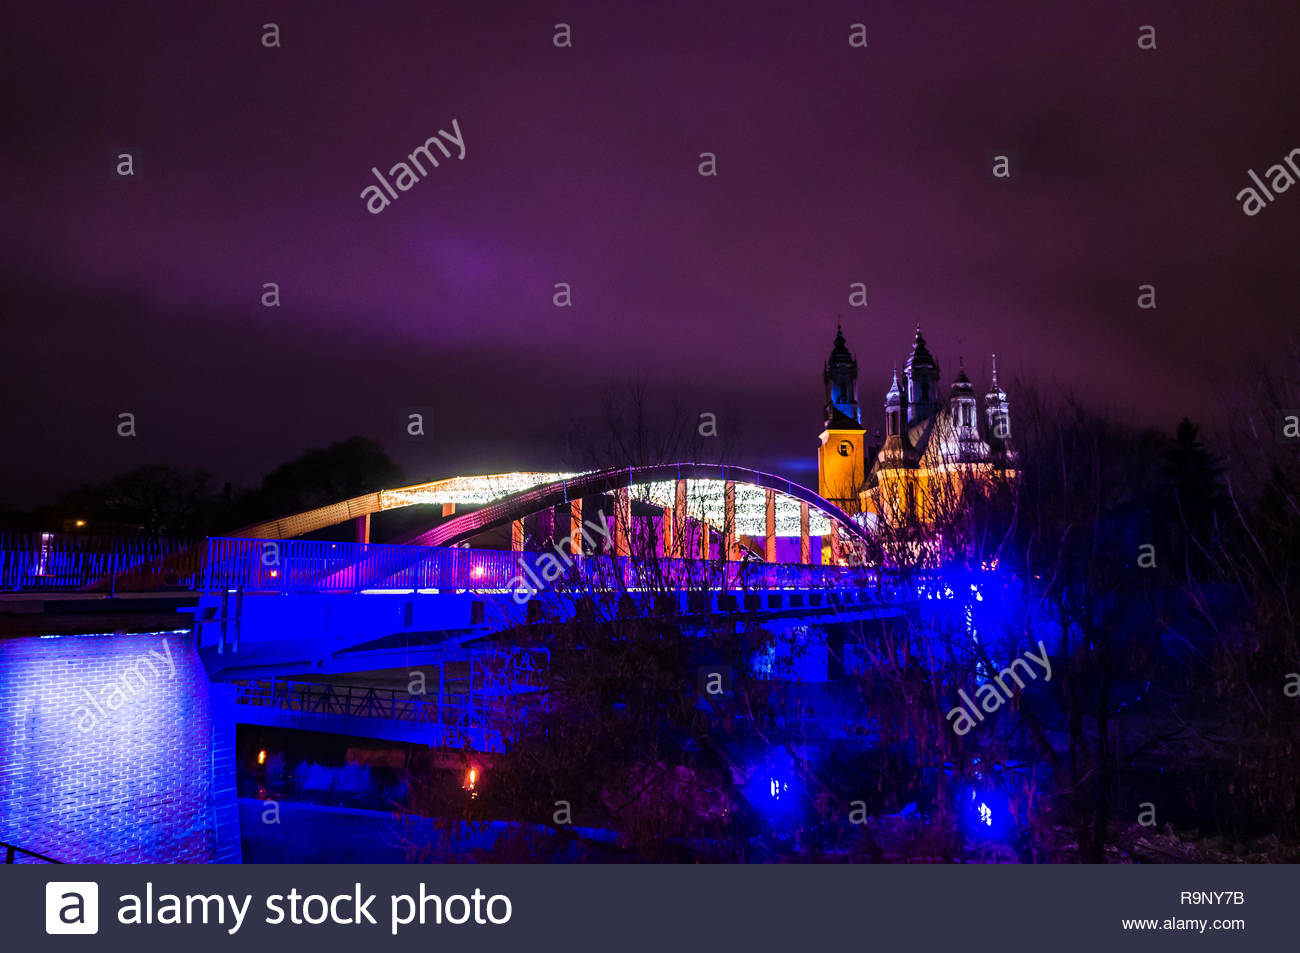 Poznan, Poland - December 26, 2018: Jordan bridge with Christmas lights over the Warta river by night. Cathedral on the Ostrow Tumski in the background.  Stock Photo